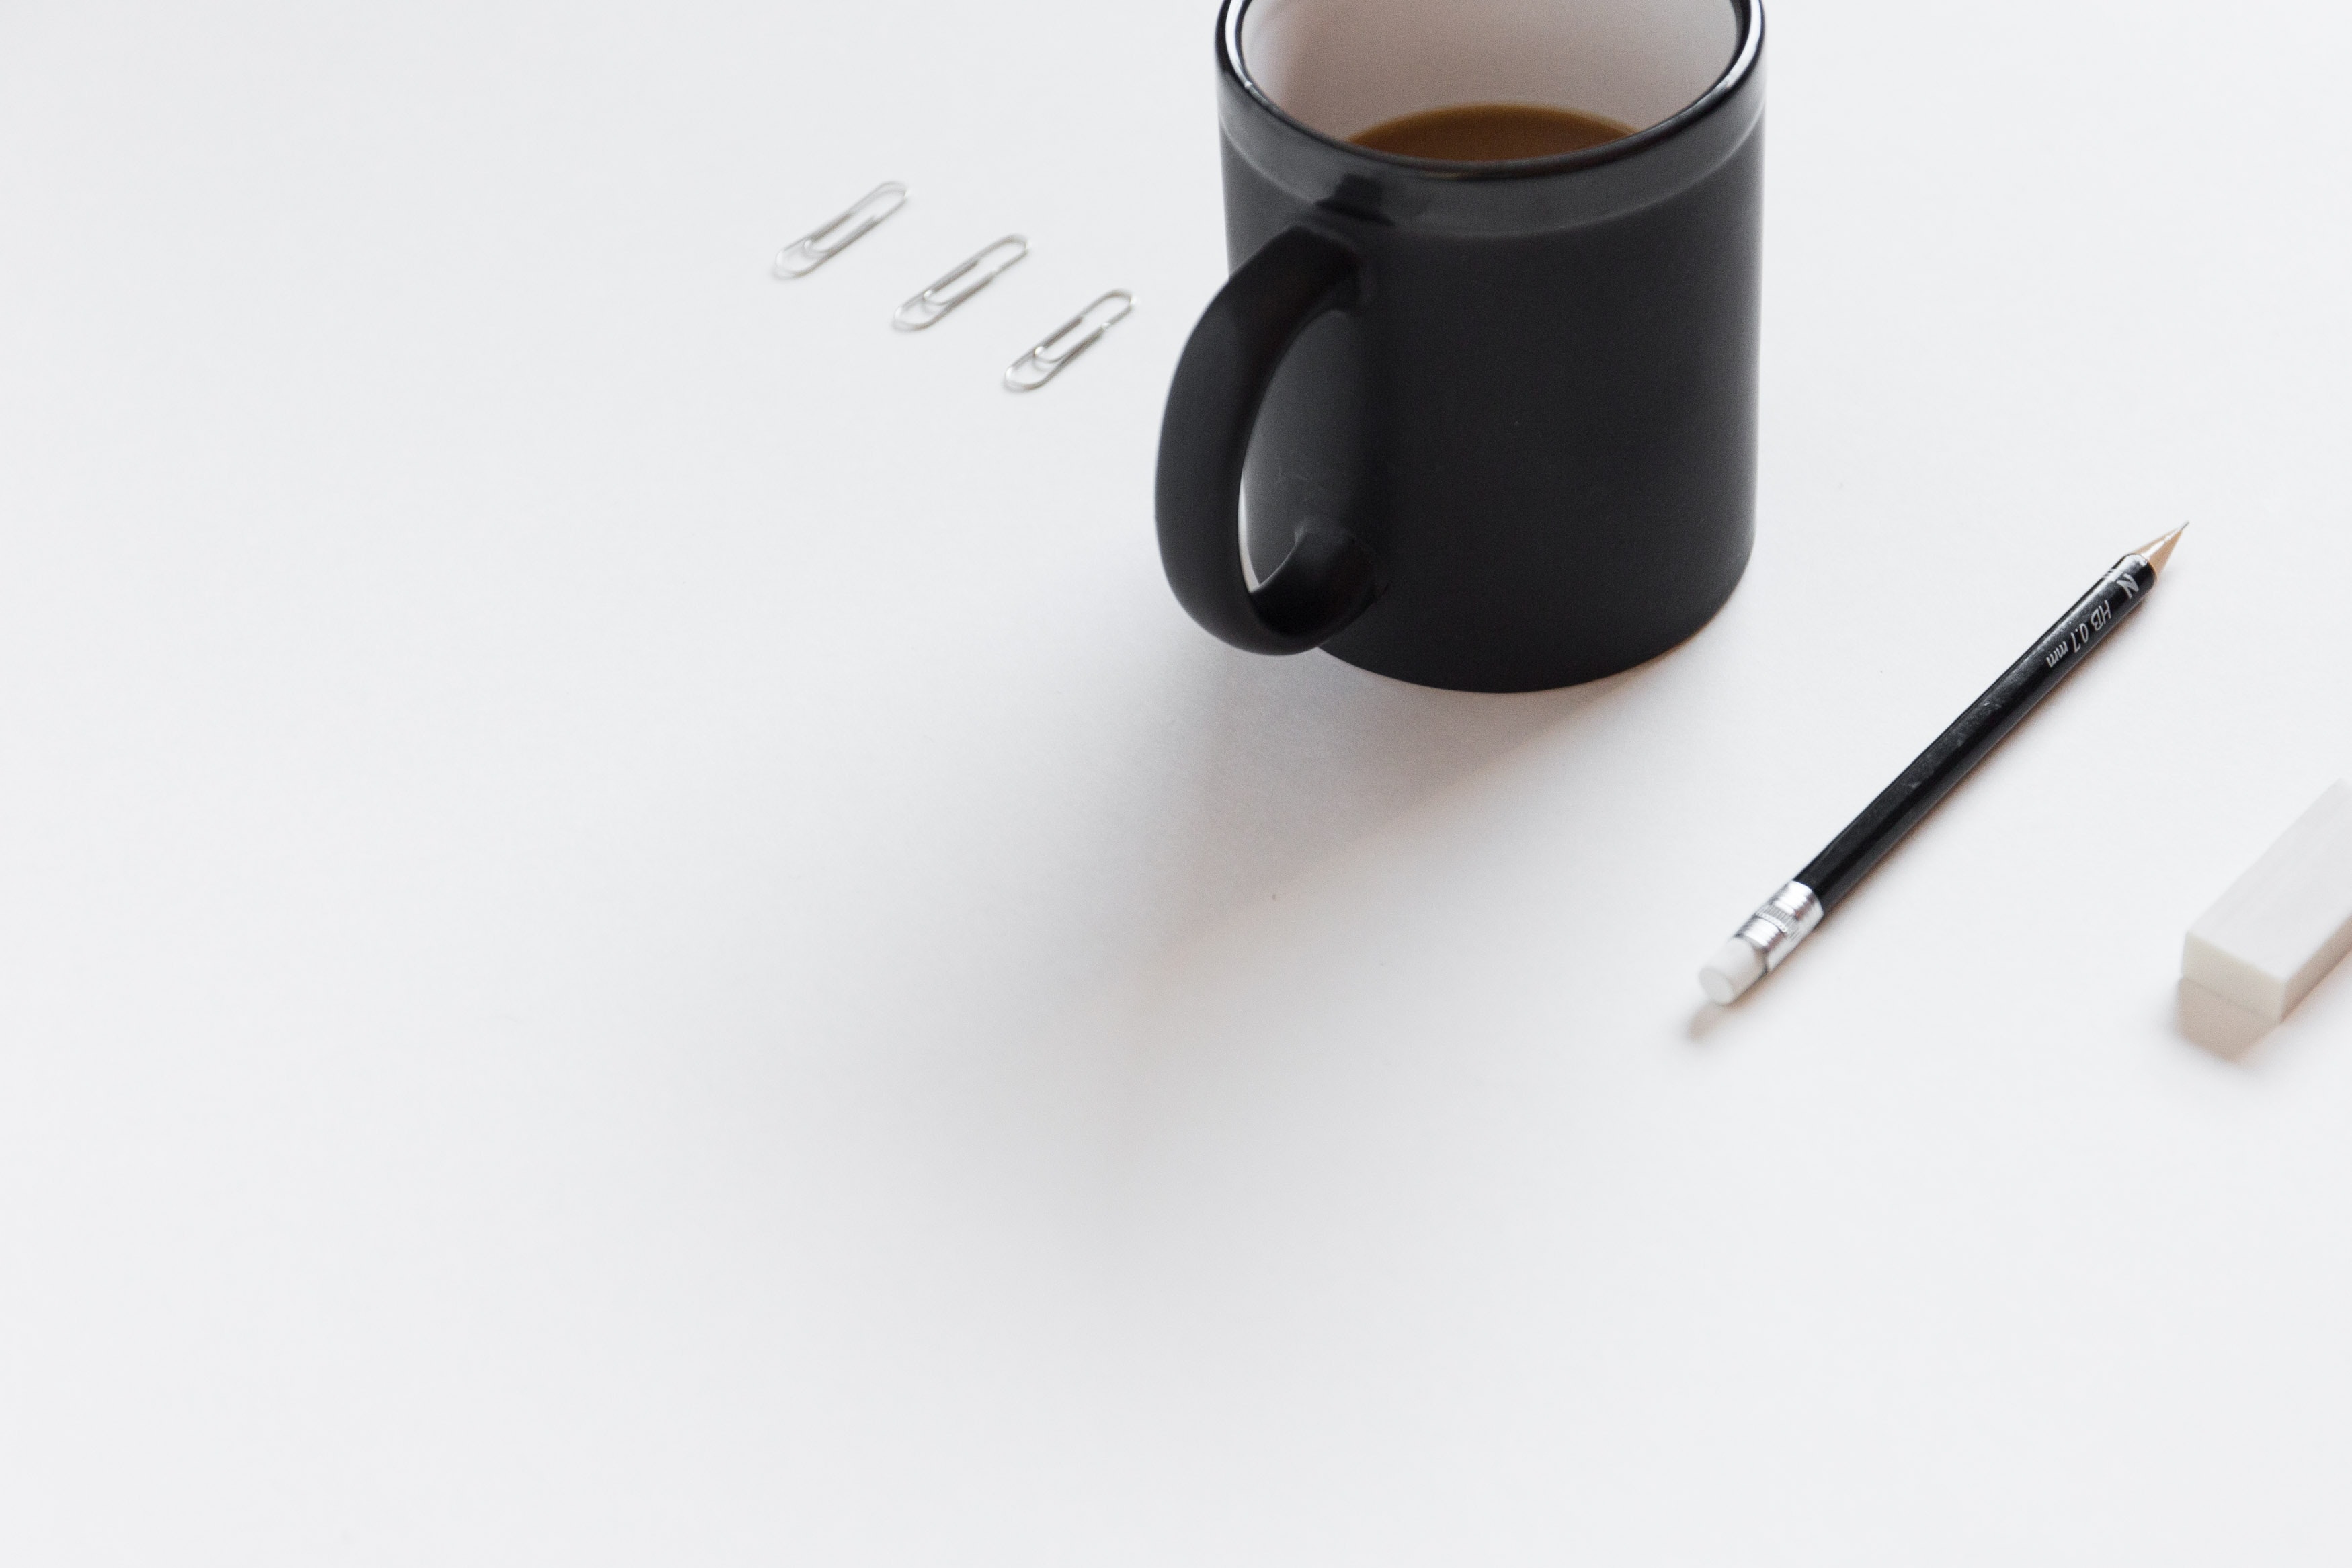 three white paper clips, black ceramic mug, black pencil, and white pencil eraser on white surface